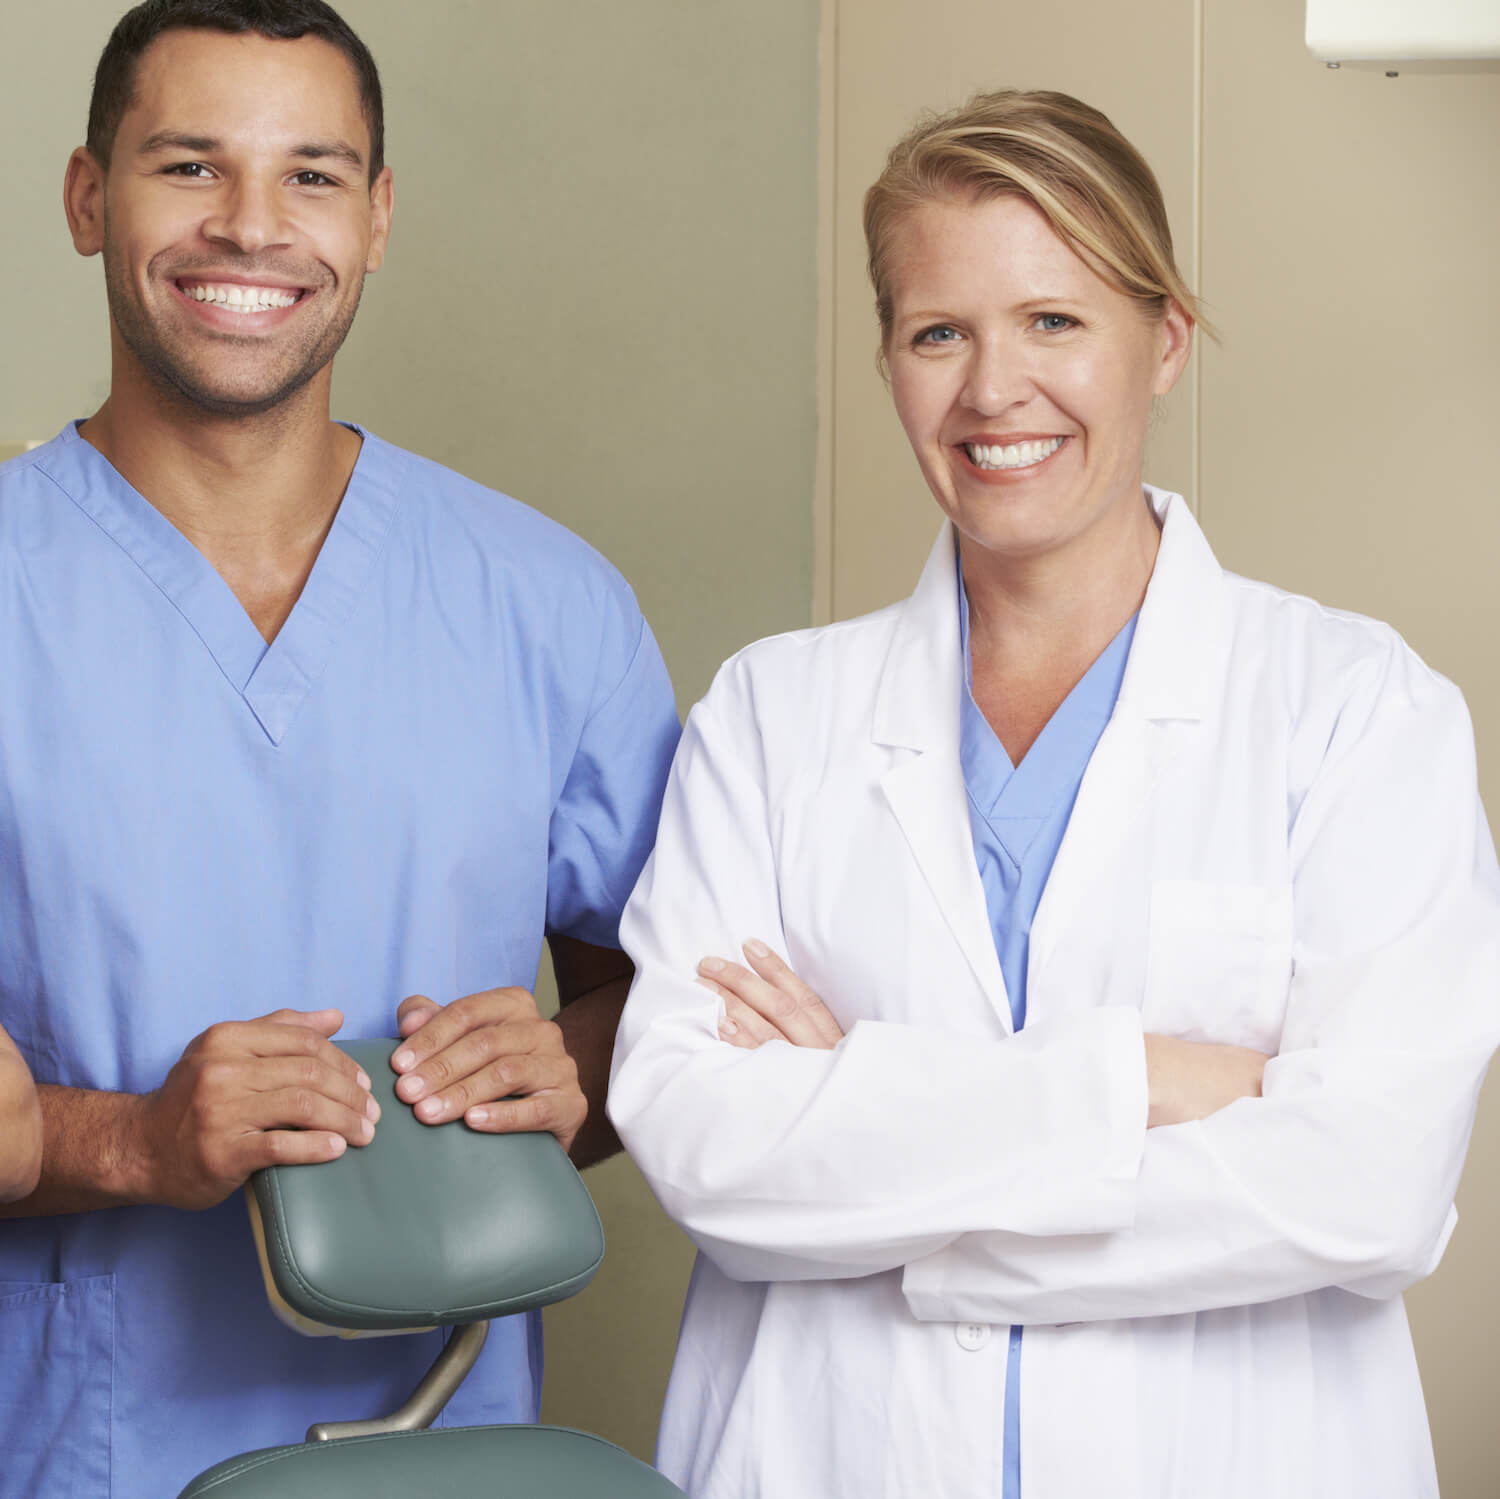 dentist and dental assistant